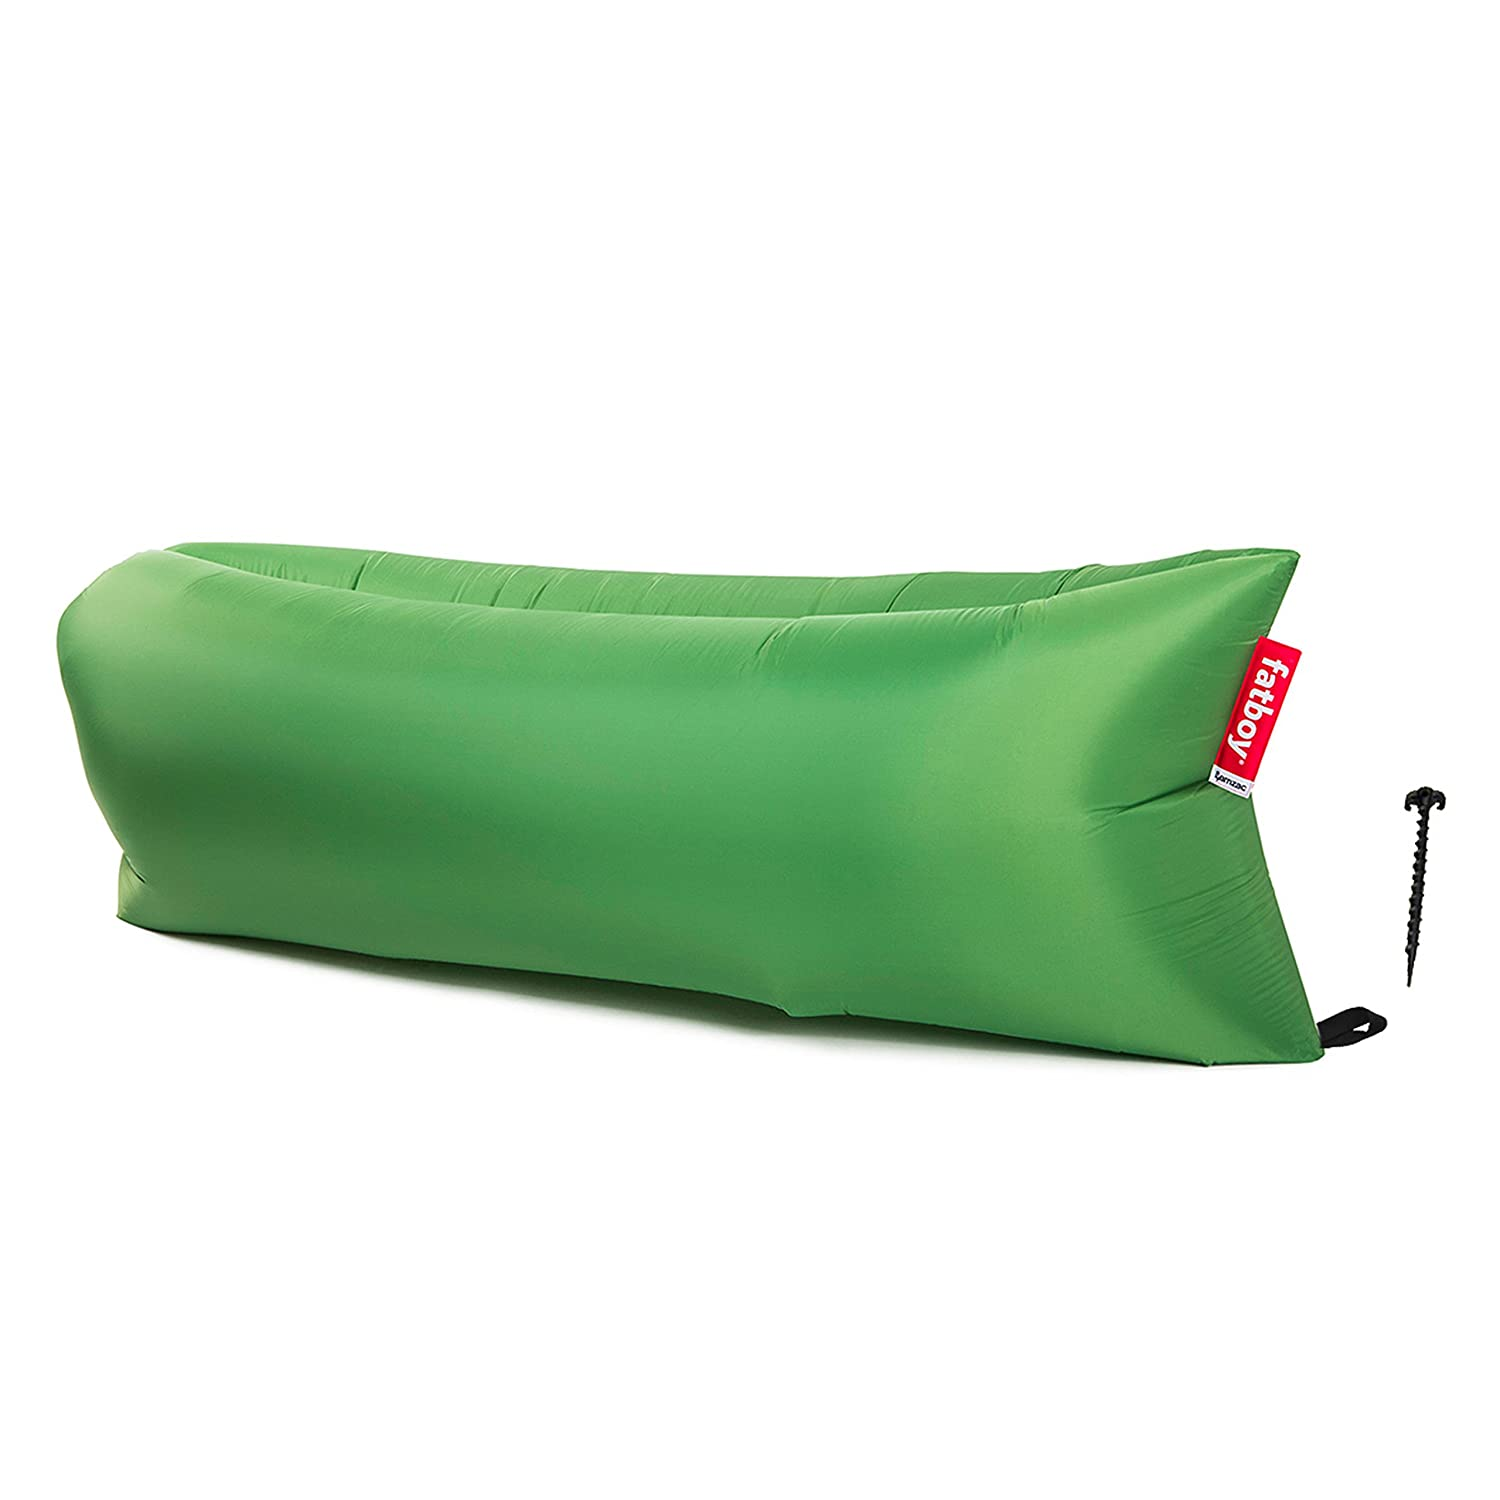 Fatboy Lamzac The Original Inflatable Air Lounger and Carry Bag Inflatable Couch for Indoor or Outdoor Hangout or Inflatable Lounge Air Chair Red LAM-SBS